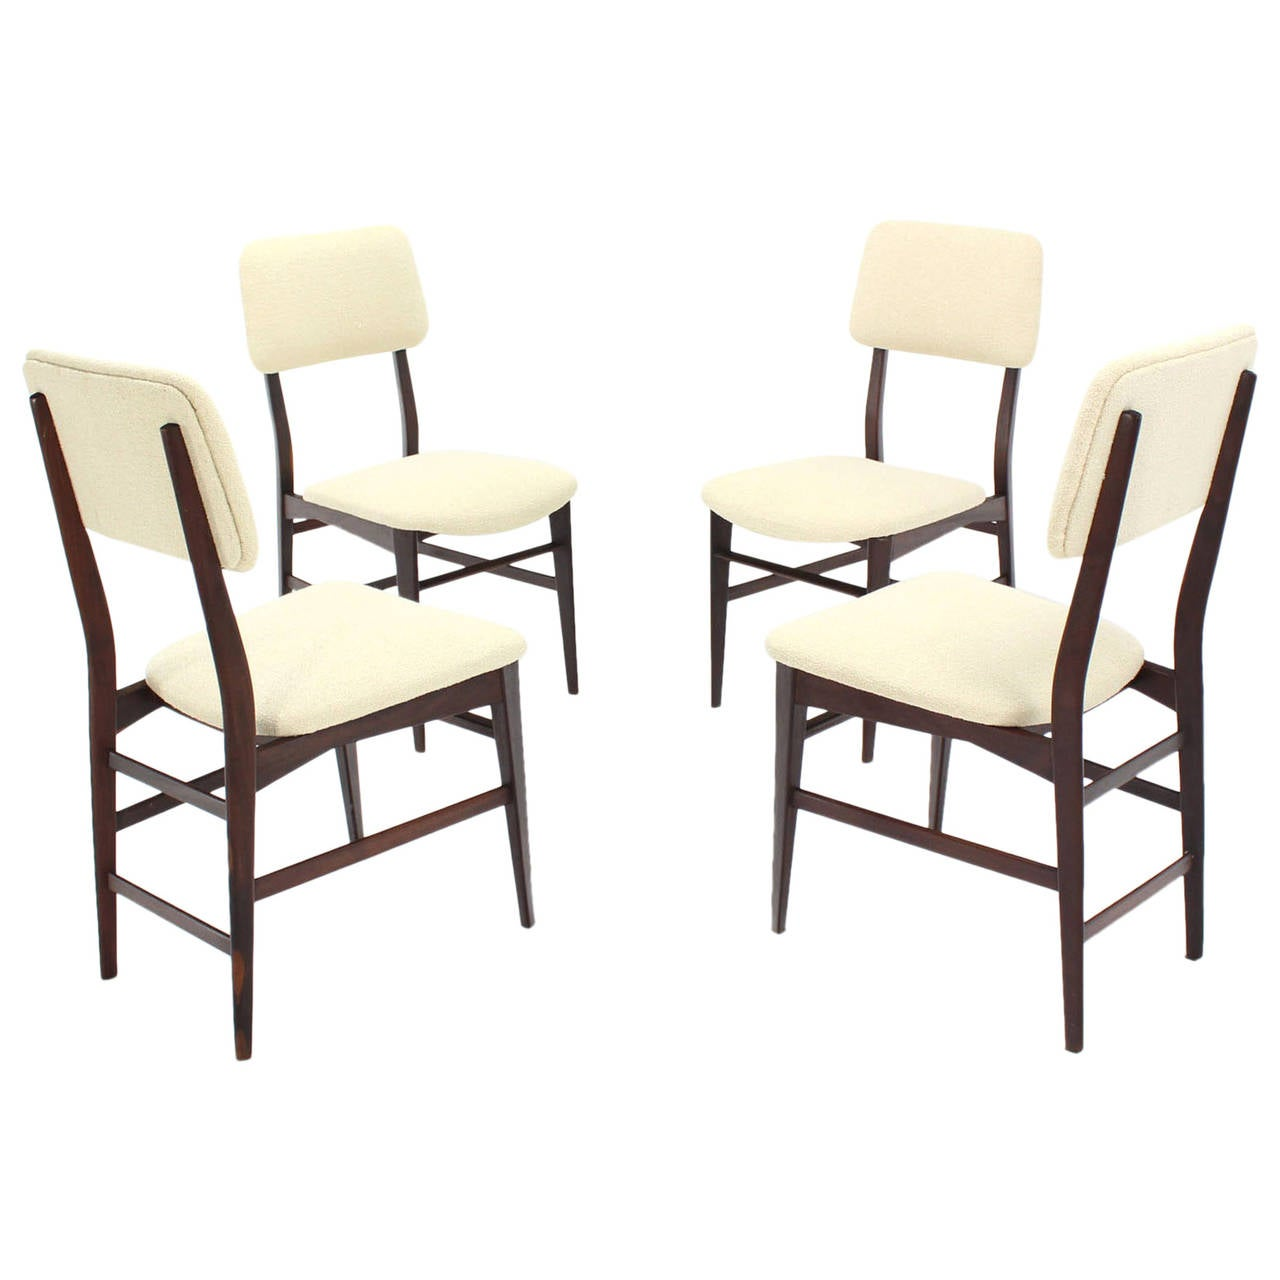 Set of four italian modern walnut dining chairs new for Italian dining chairs modern